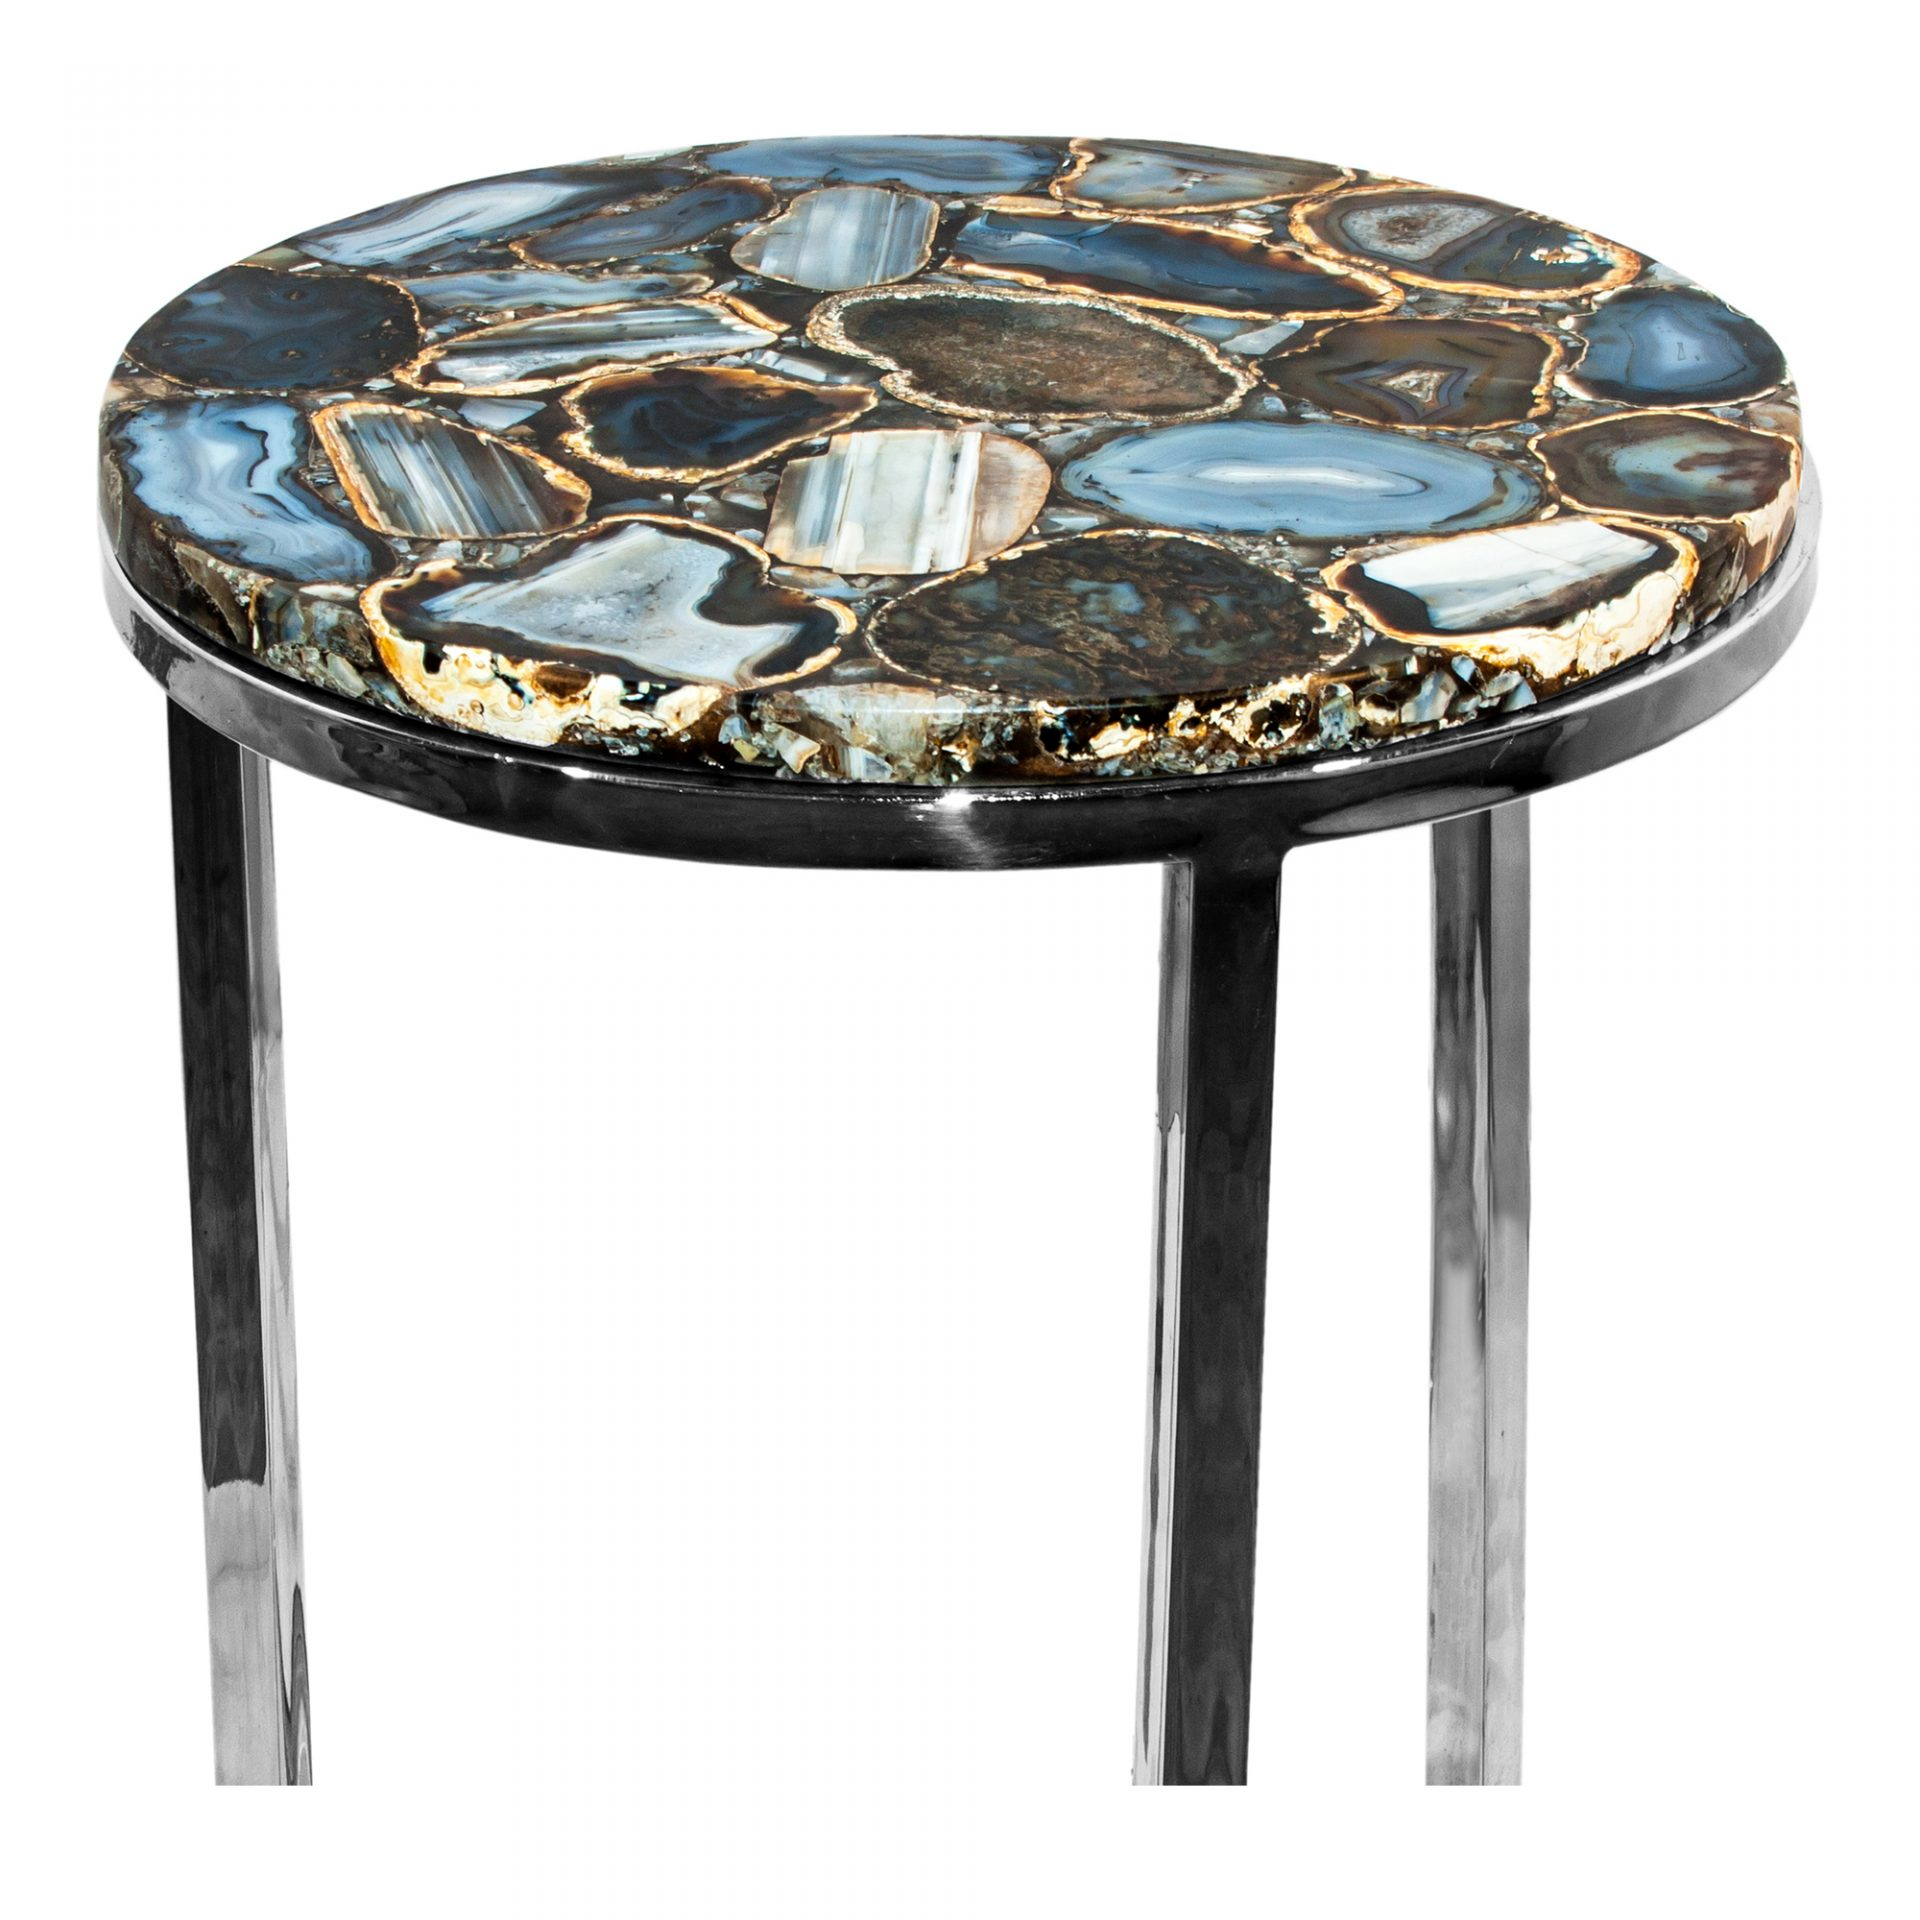 shimmer agate accent table products moe whole tables with built side magnussen allure end white decorative storage cabinet expandable furniture gold drum coffee top designs glass